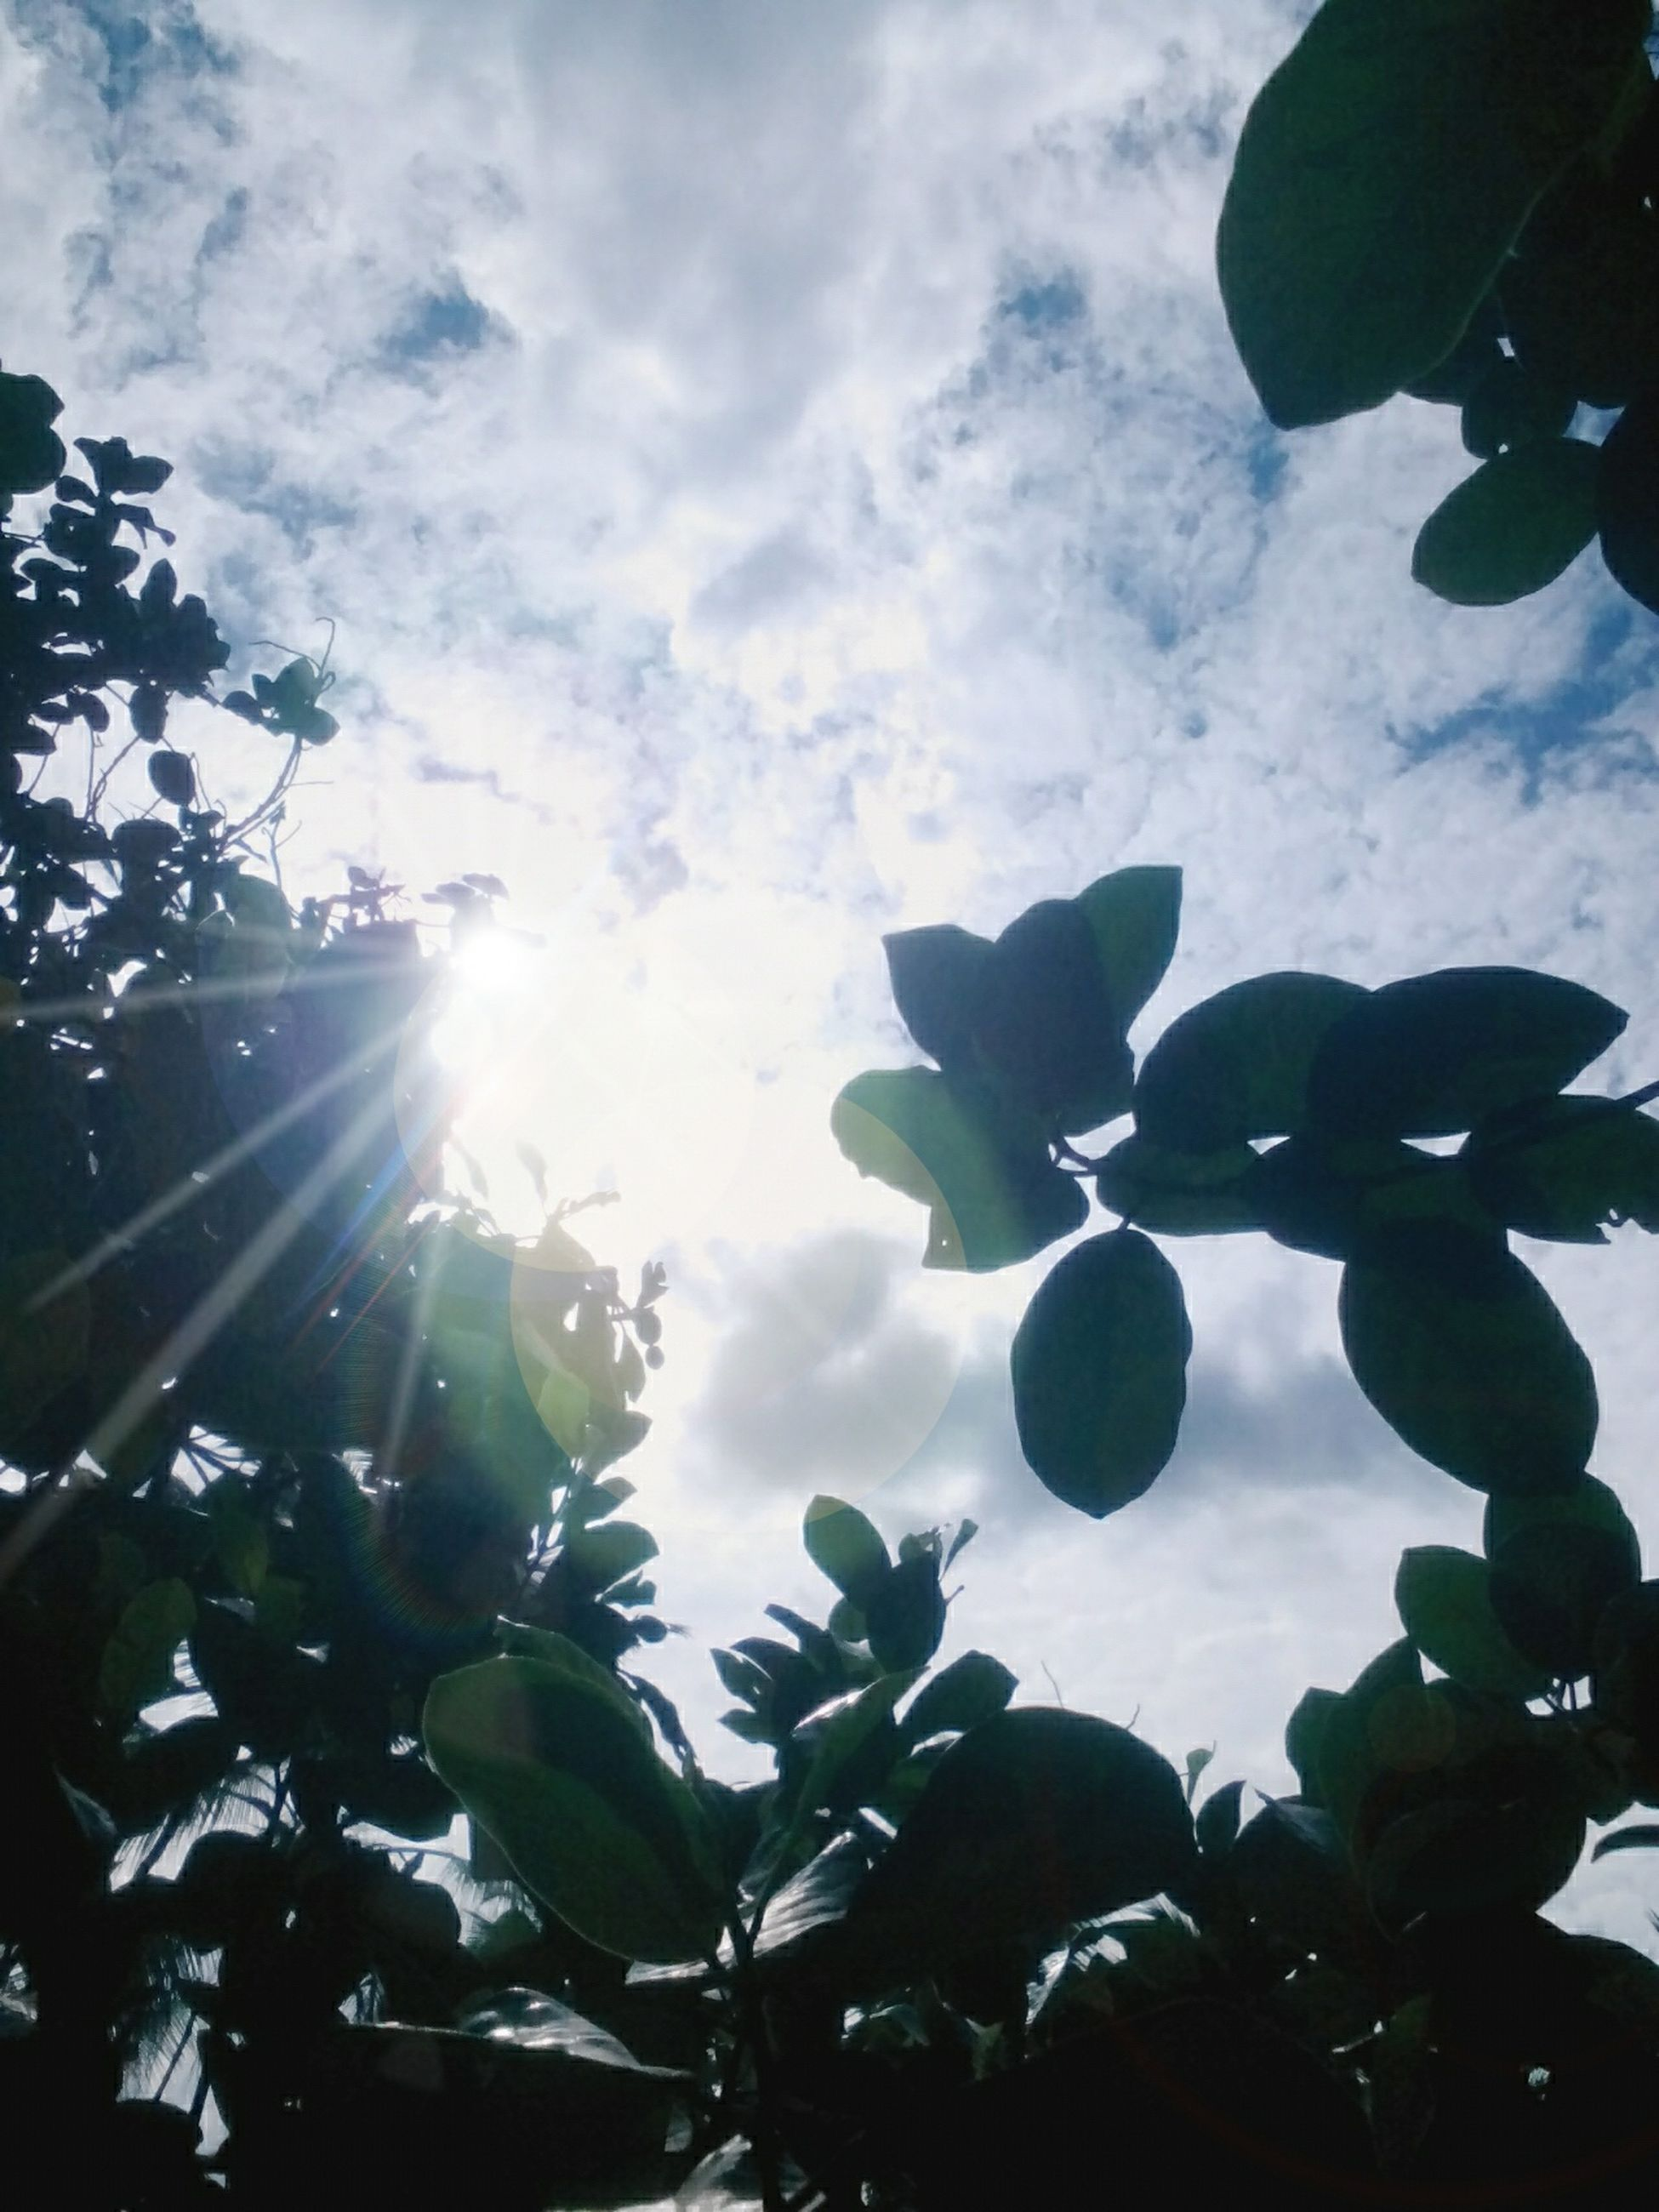 low angle view, leaf, sun, sky, growth, tree, nature, sunlight, sunbeam, beauty in nature, branch, lens flare, cloud - sky, tranquility, plant, day, outdoors, no people, close-up, cloudy